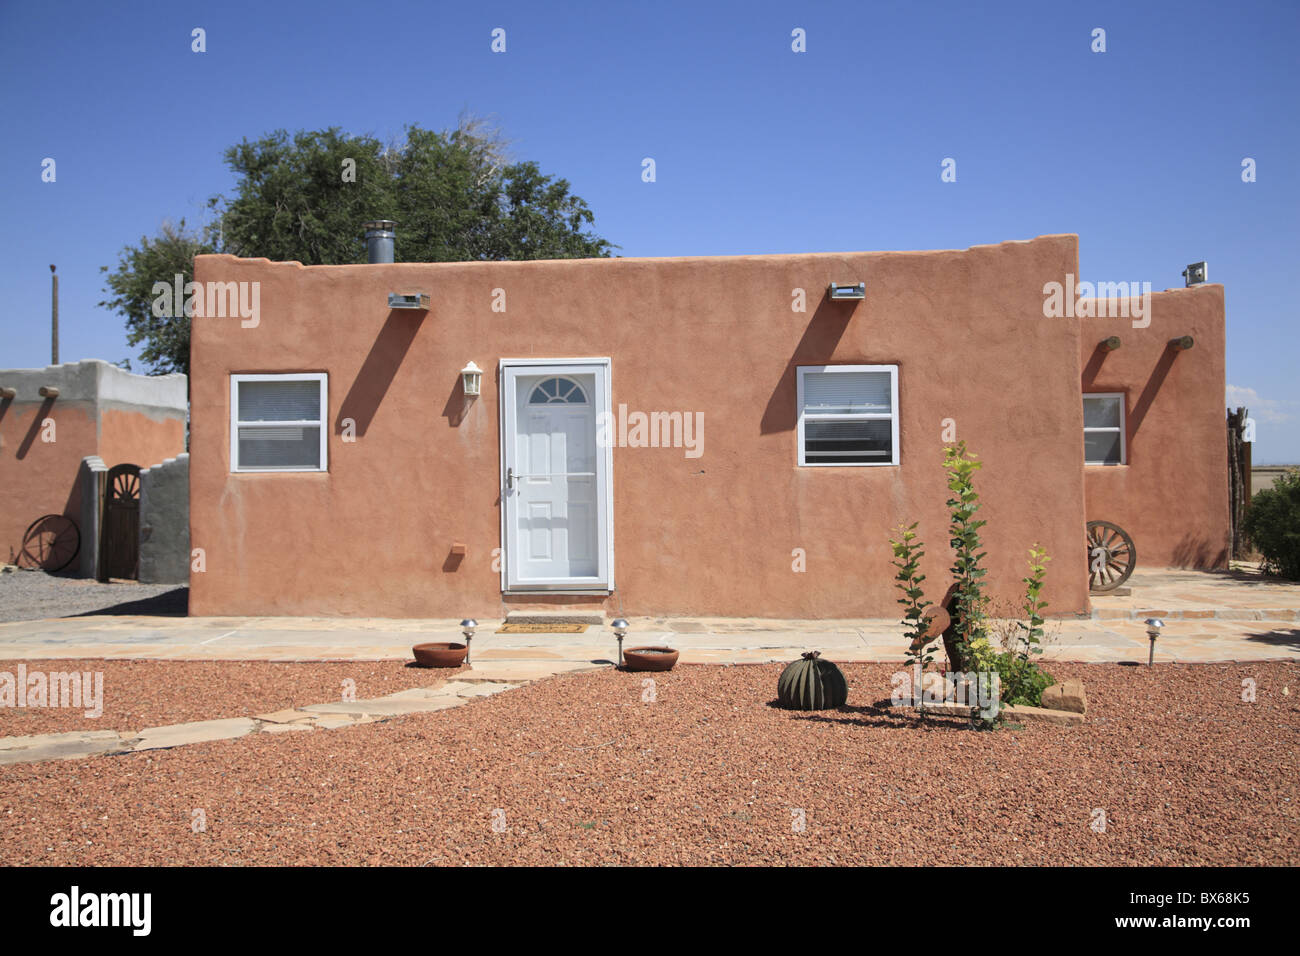 Good Adobe Building Home - adobe-house-stanley-new-mexico-united-states-of-america-north-america-BX68K5  You Should Have_100556.jpg